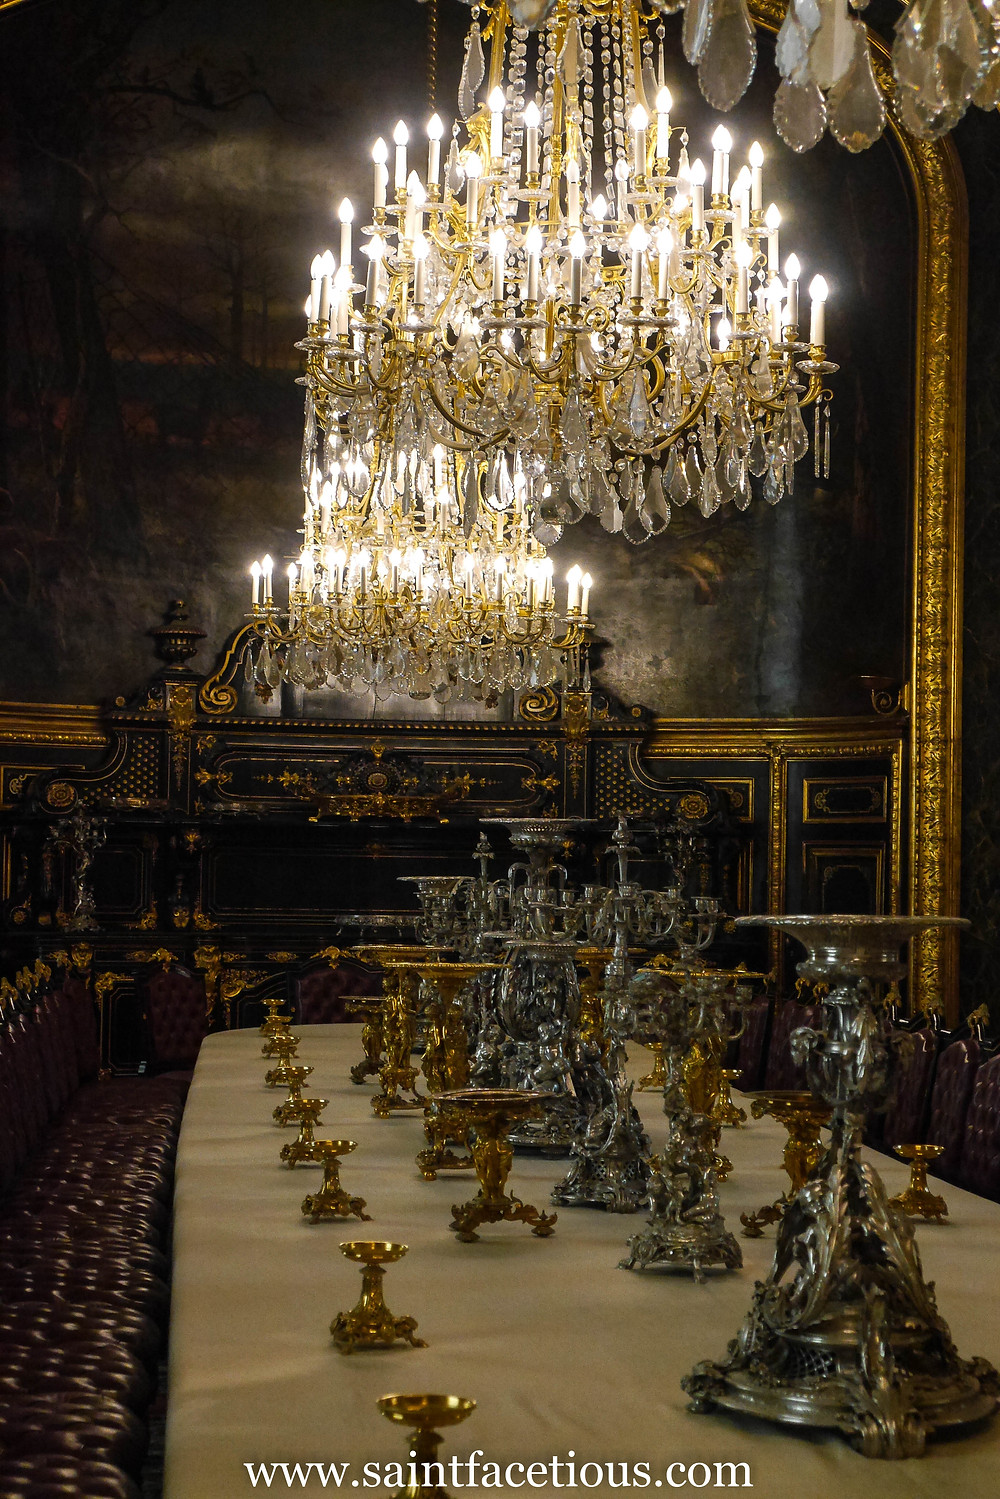 the Louvre dining room set. Everybody knows the Louvre and the Mona Lisa. But here are some tips for managing your tour for just a few hours and beating the lines. Read all about it on the blog, www.saintfacetious.com